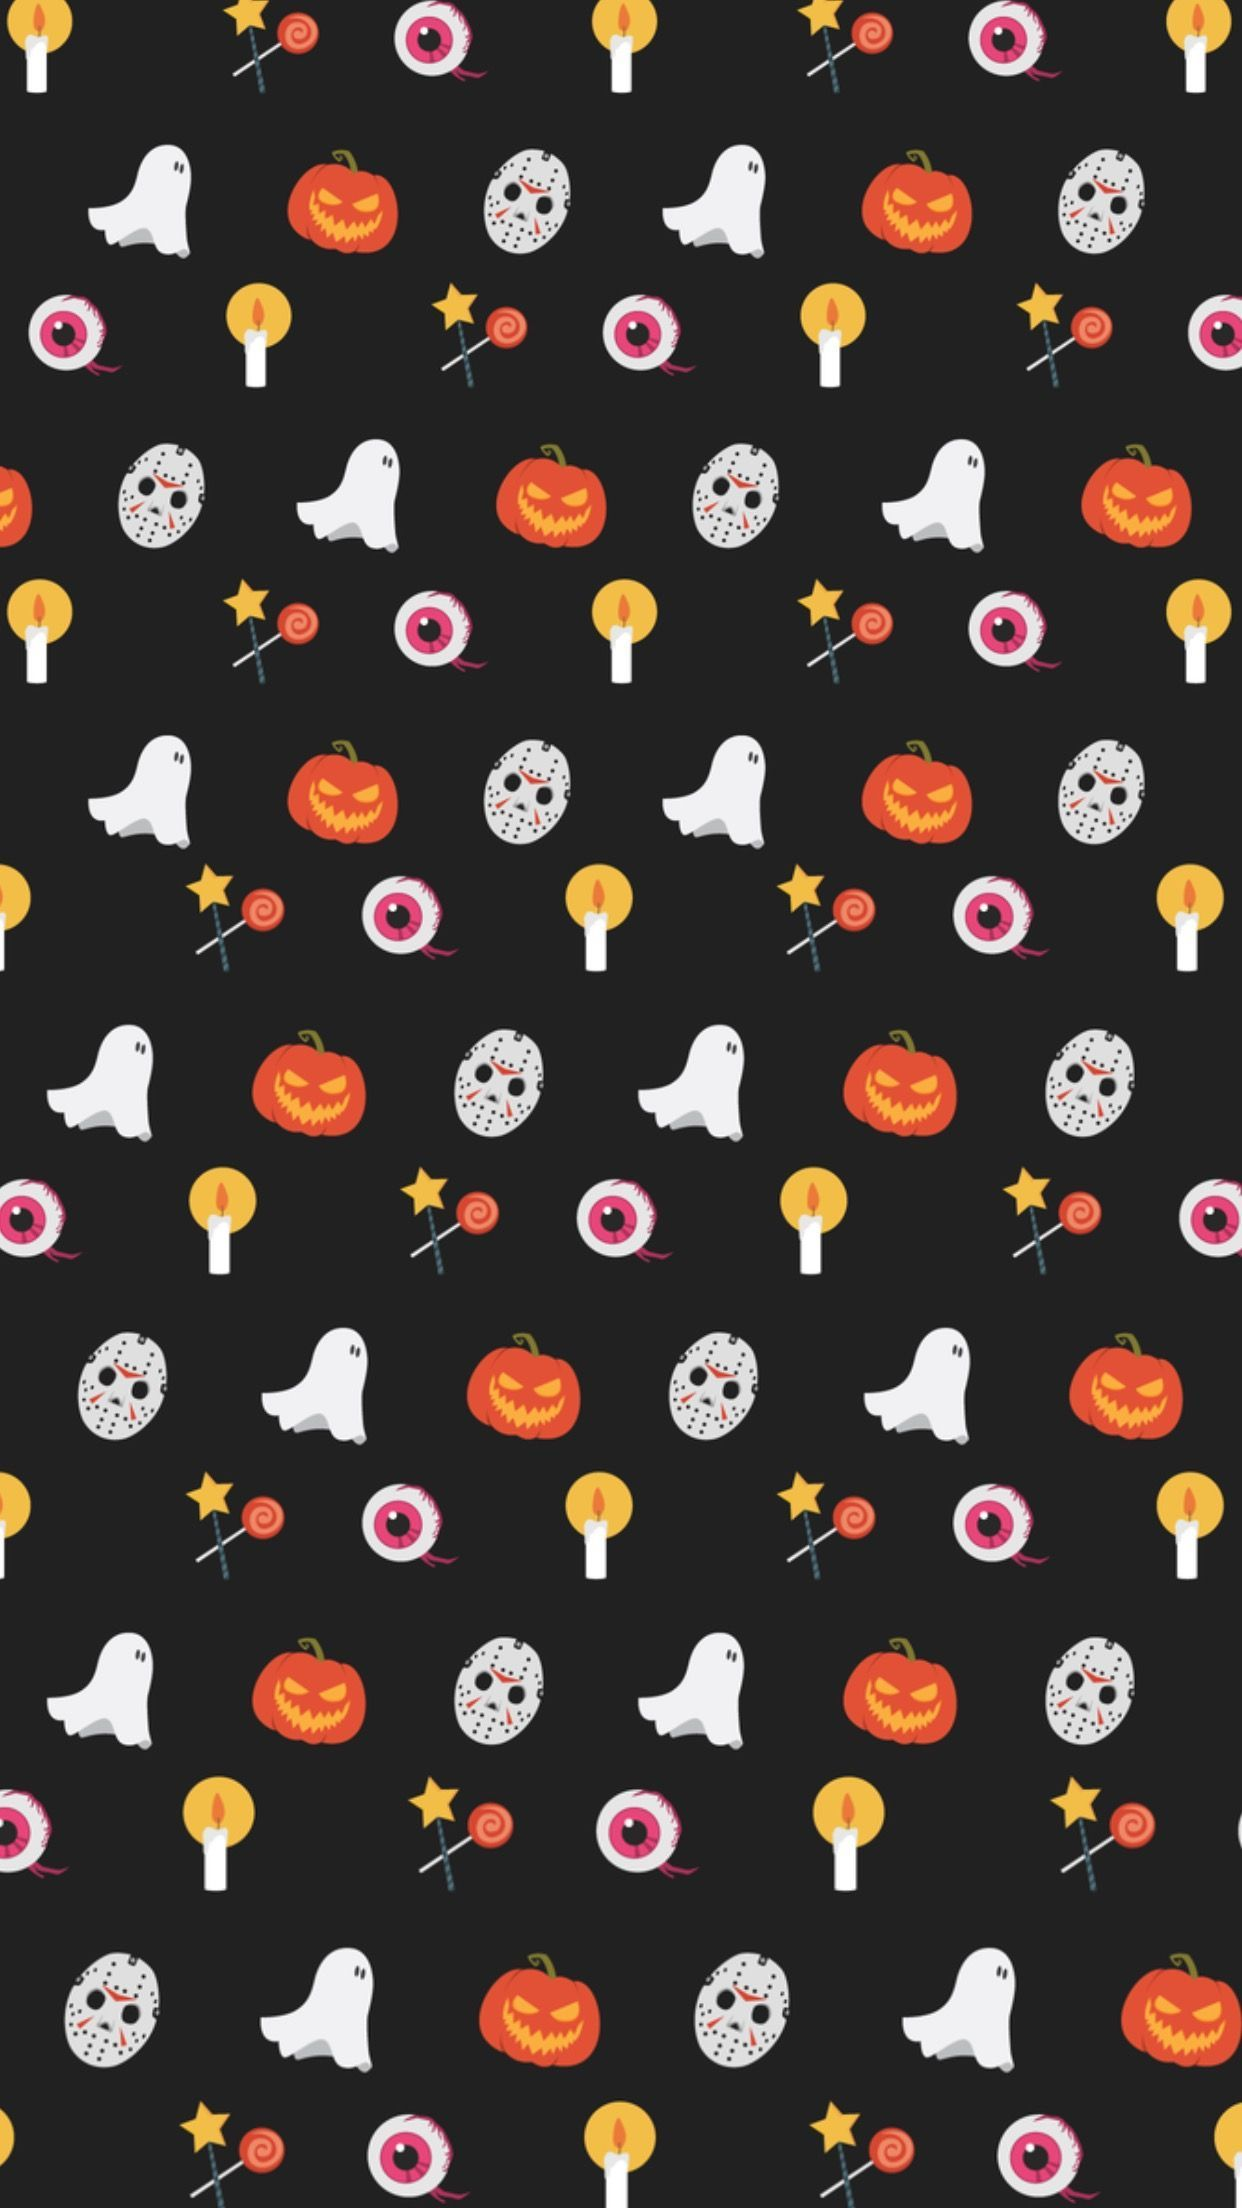 , cellphonebackgroundautumn in 2020 Halloween wallpaper